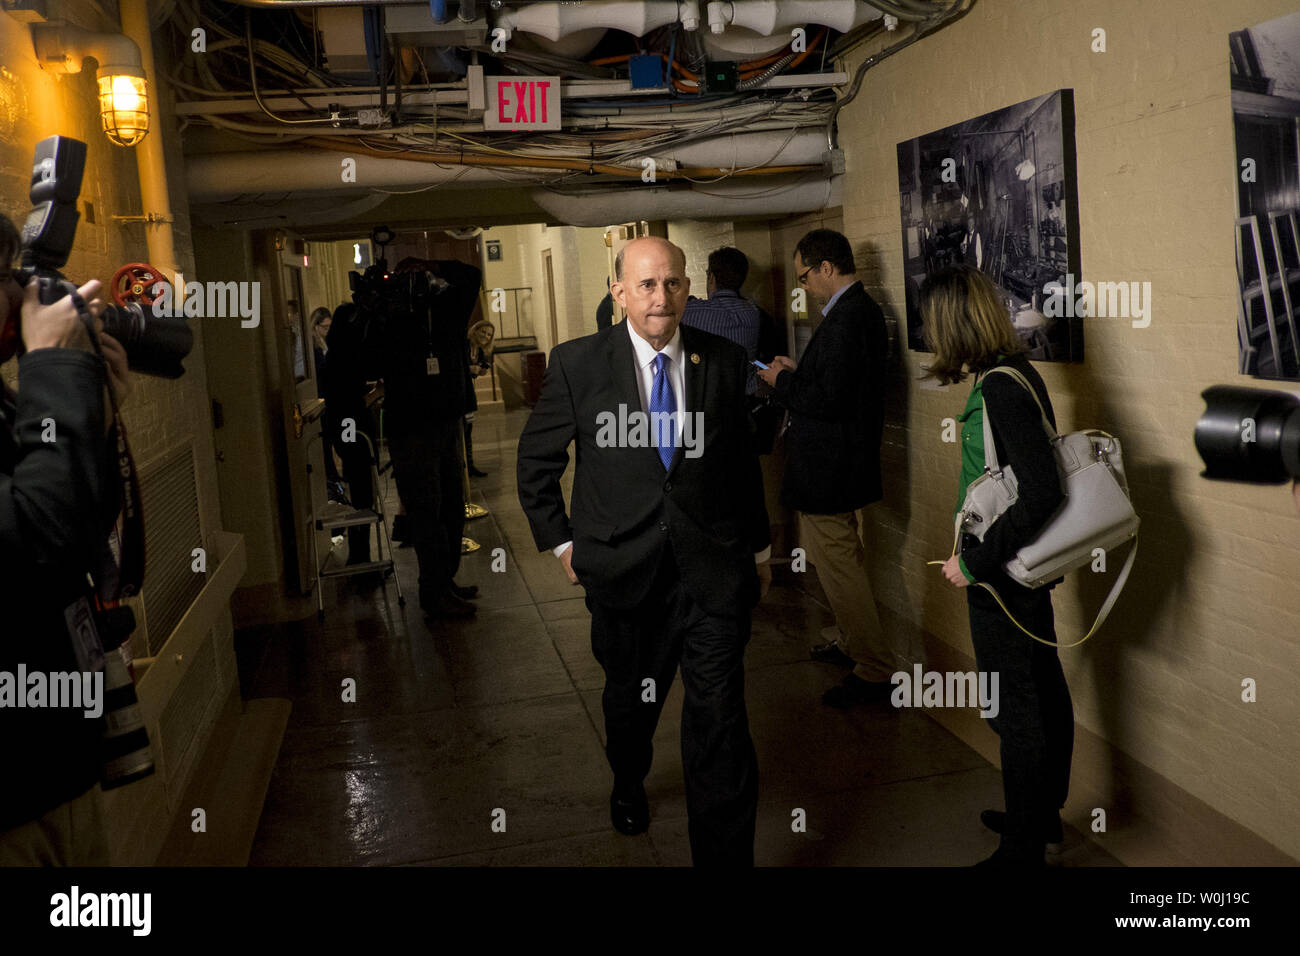 Rep. Louie Gohmert (R-TZ) leaves a GOP Conference Candidates forum for the election of the new Speaker of the House on October 28, 2015 in Washington, D.C. The Republicans are selecting a candidate for Speaker that will replace John Boehner (R-OH) when he retires on October 30. Photo by Pete Marovich/UPI - Stock Image